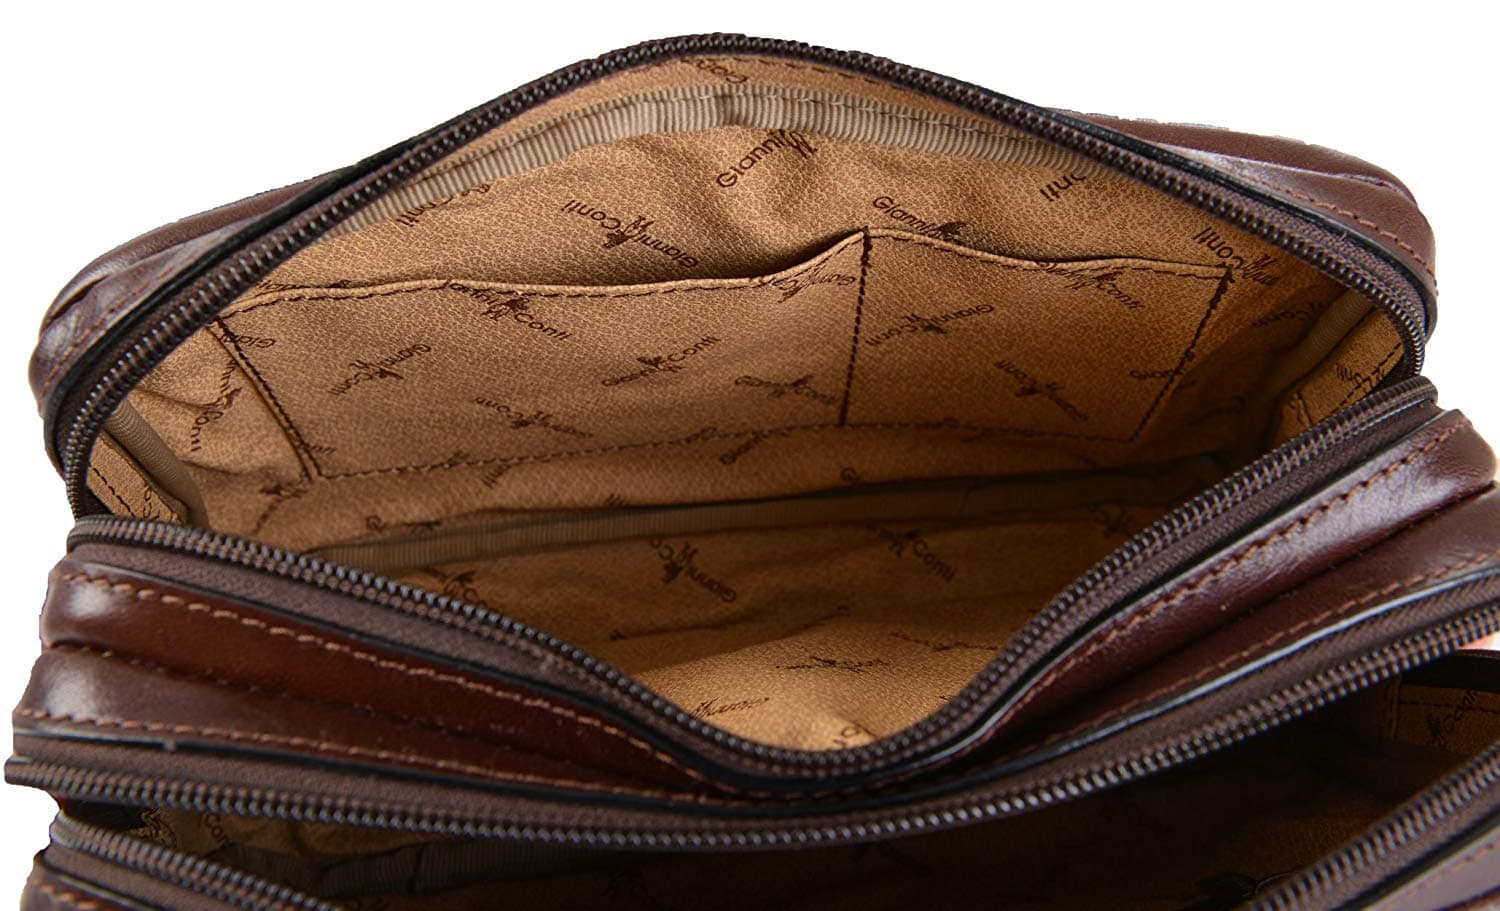 c4cad46aad Gianni Conti Fine Italian Leather BROWN Mens Travel Wash Toiletry Bag 905158